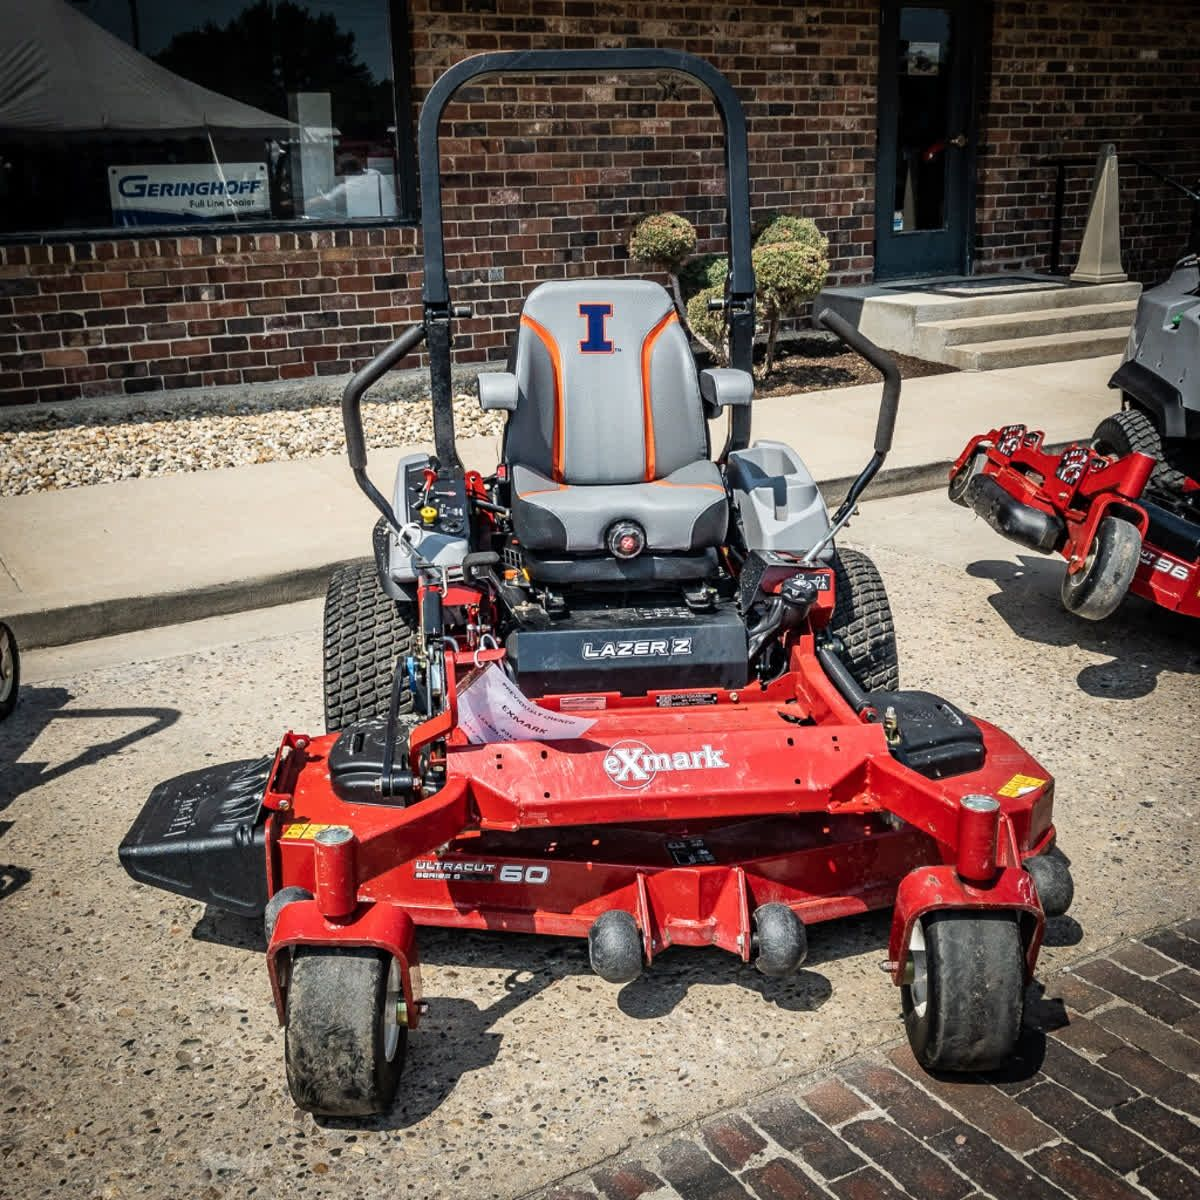 The University Of Illinois Seat Sure Looks Nice On This Exmark Lazer Z Mower Would You Drive It Outdoor Riding Lawnmower Outdoor Power Equipment